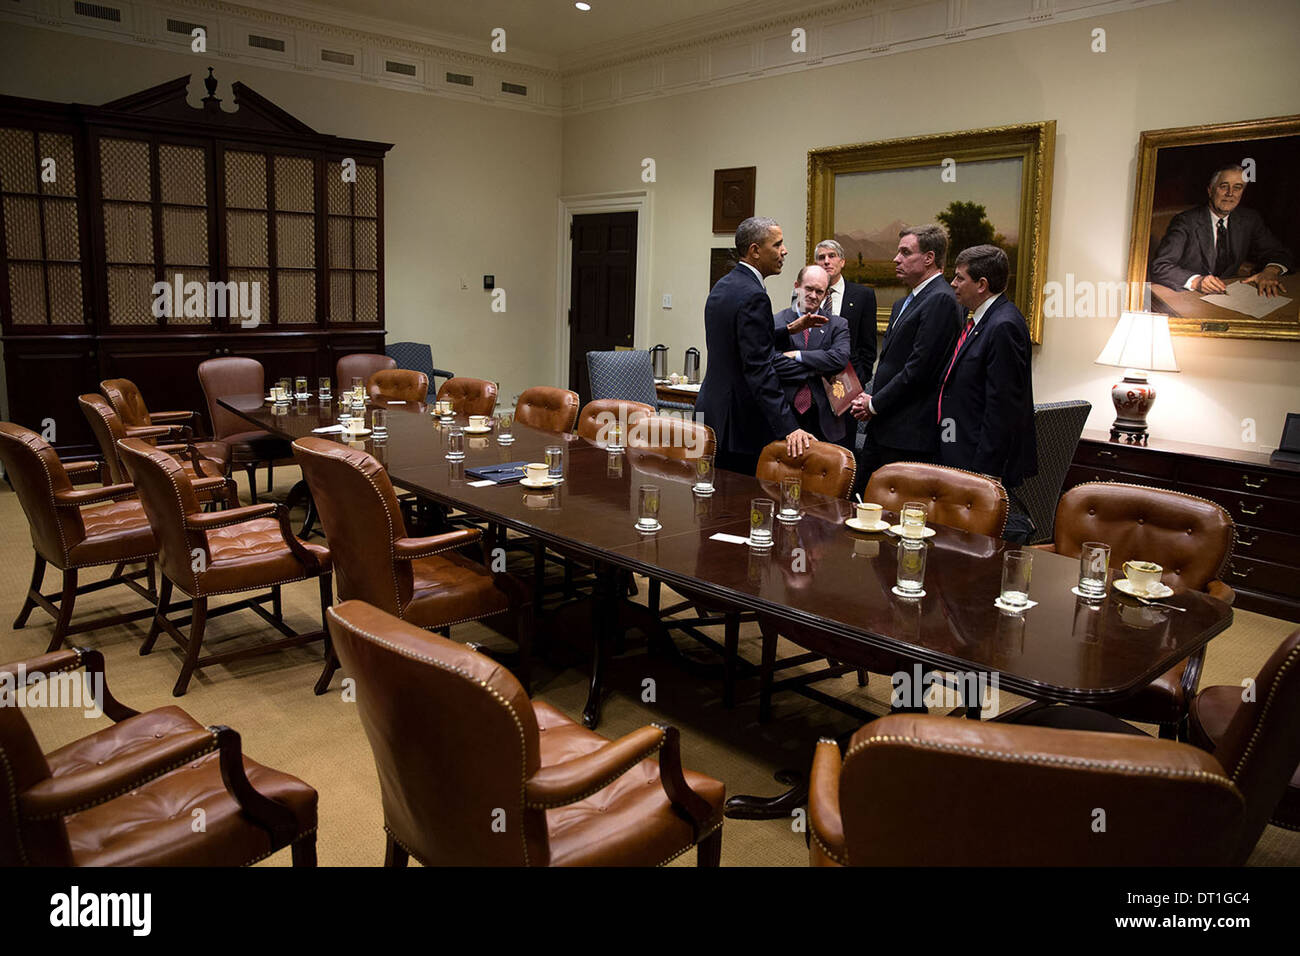 US President Barack Obama talks with Democratic Senators following a meeting with Members of Congress on the Affordable Care Act in the Roosevelt Room of the White House November 6, 2013 in Washington, DC. Standing with the President, from left, are: Sen. Chris Coons, Sen. Mark Udall, Sen. Mark Warner, and Sen. Mark Begich. - Stock Image